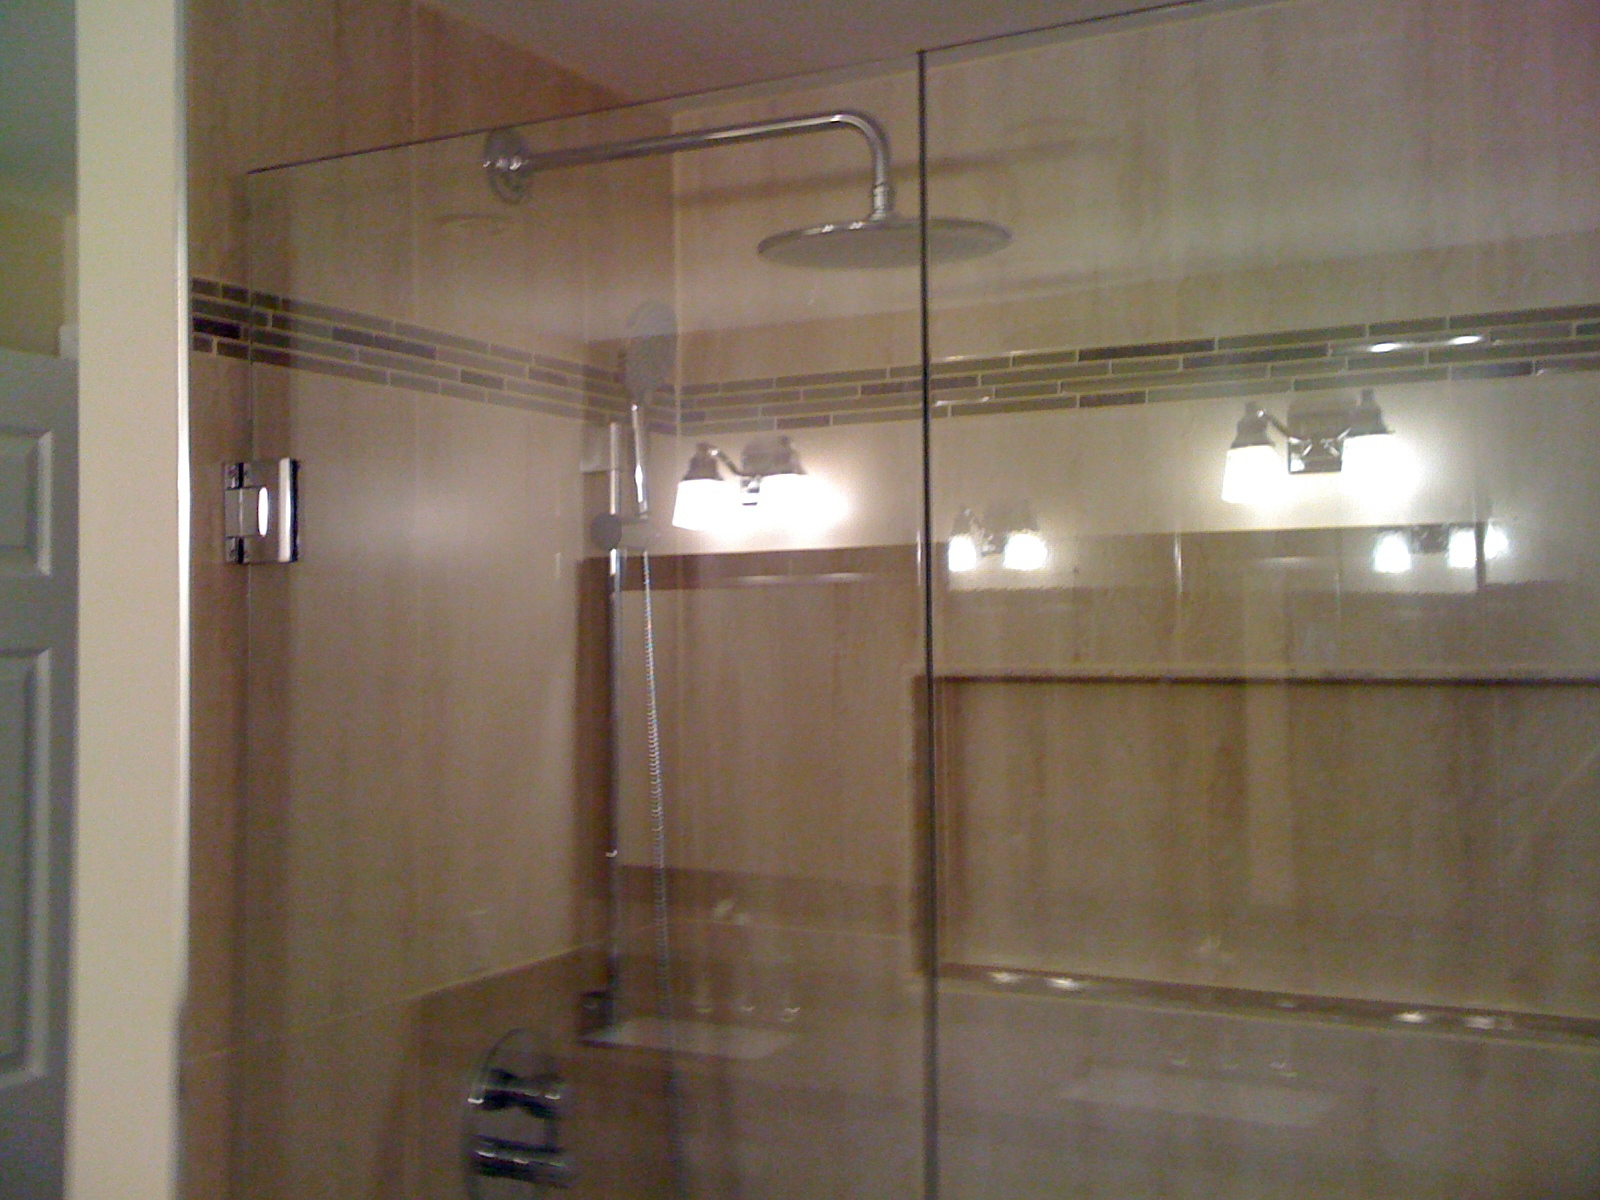 Stand up shower with glass door